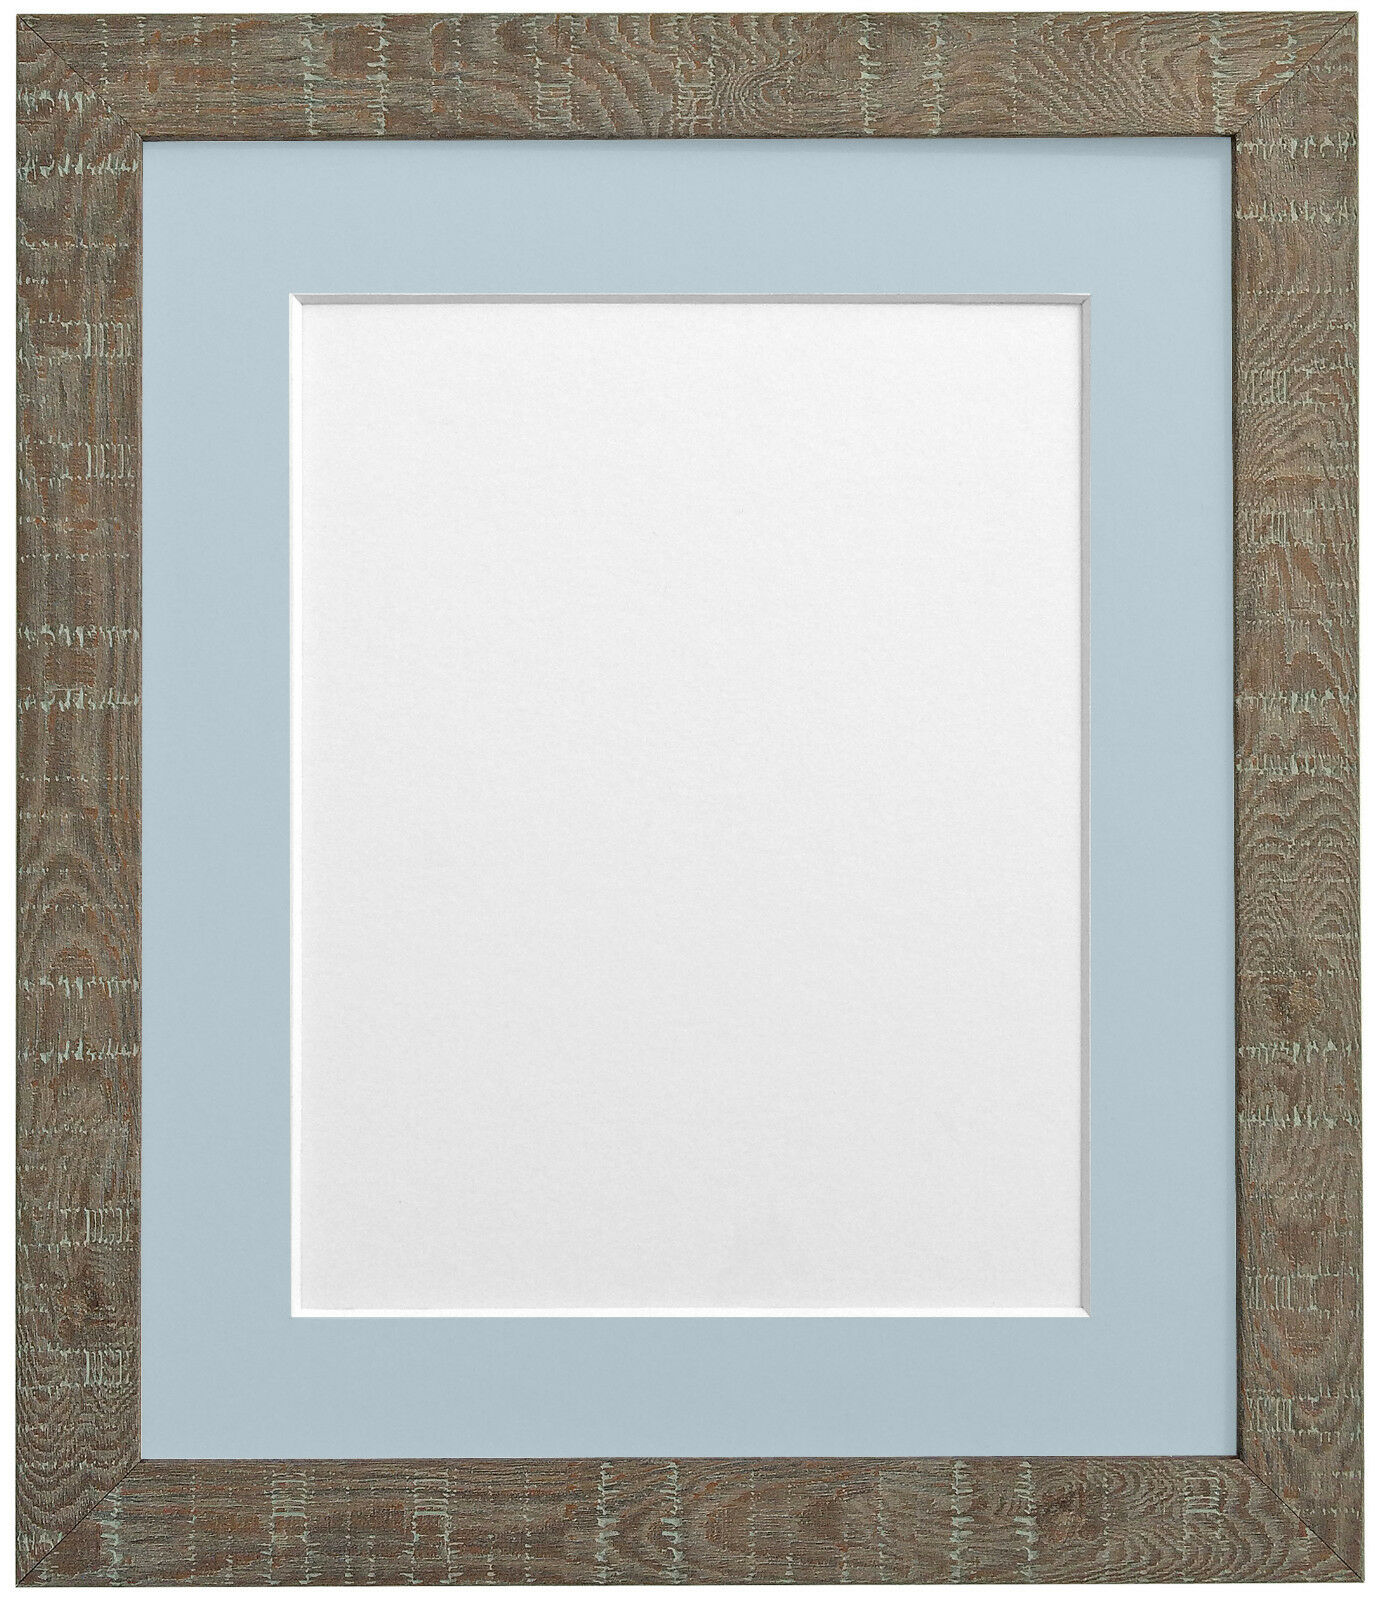 Deep Grain Medium Brown Picture Photo Frames with choice of 7 mount colours